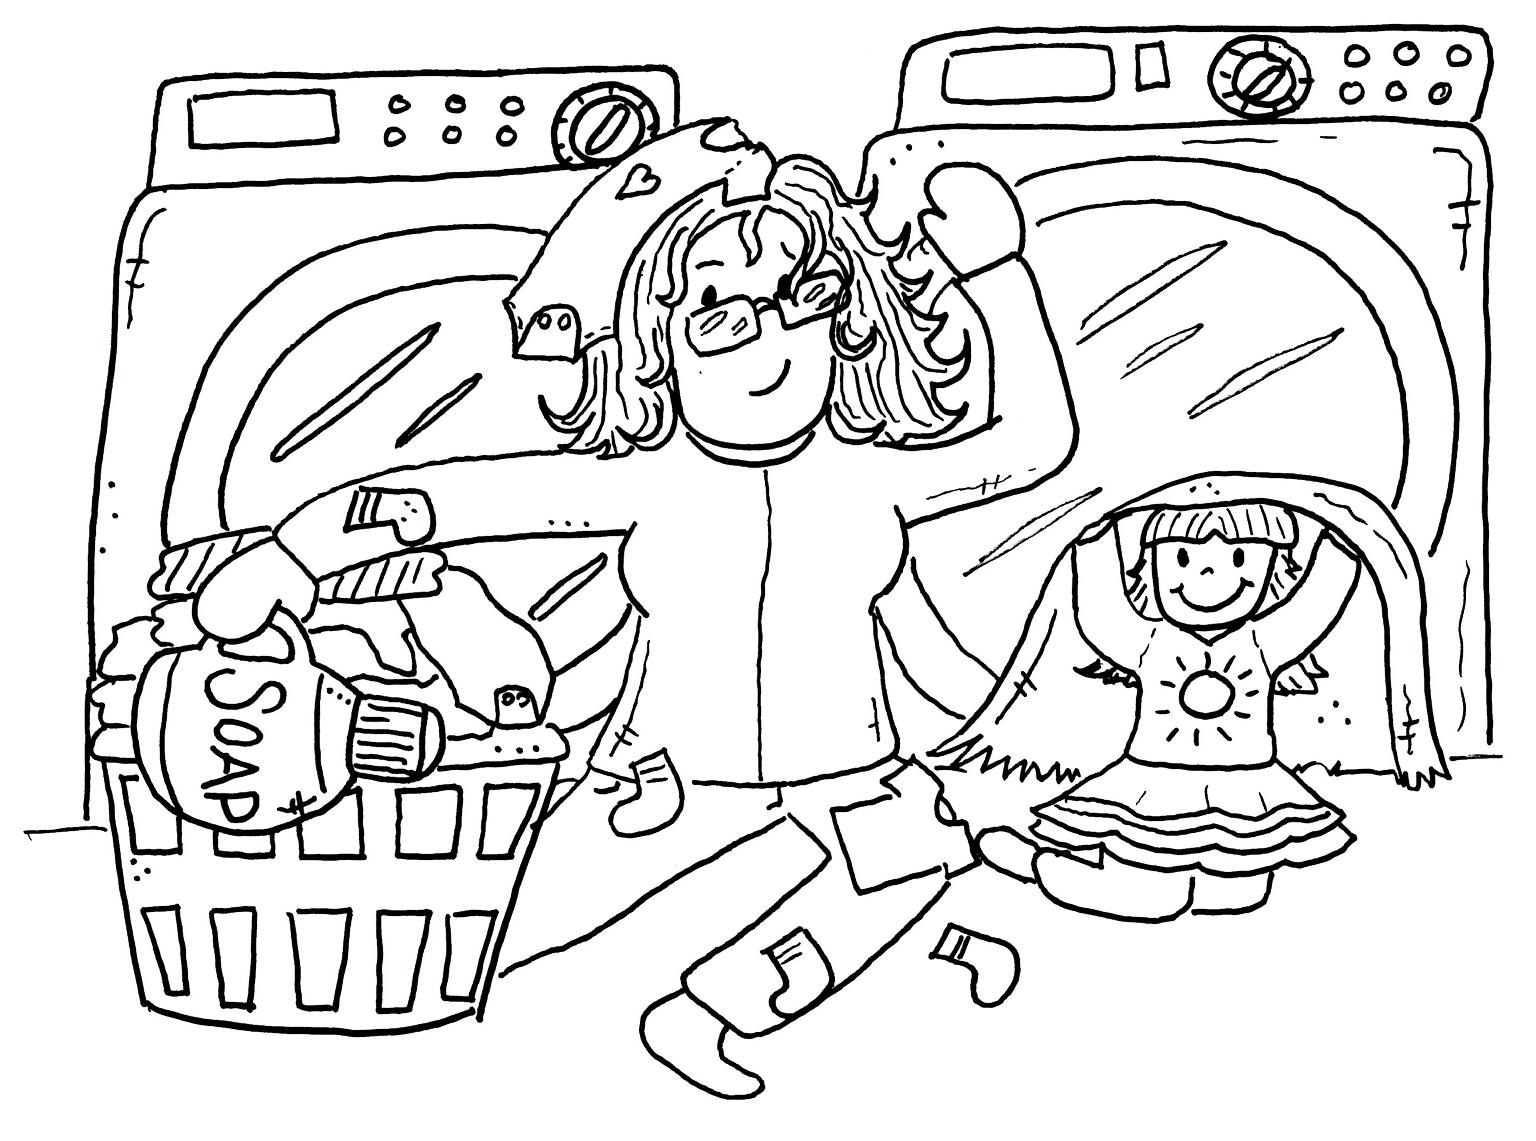 Purplicious Coloring Pages Home Sketch Coloring Page